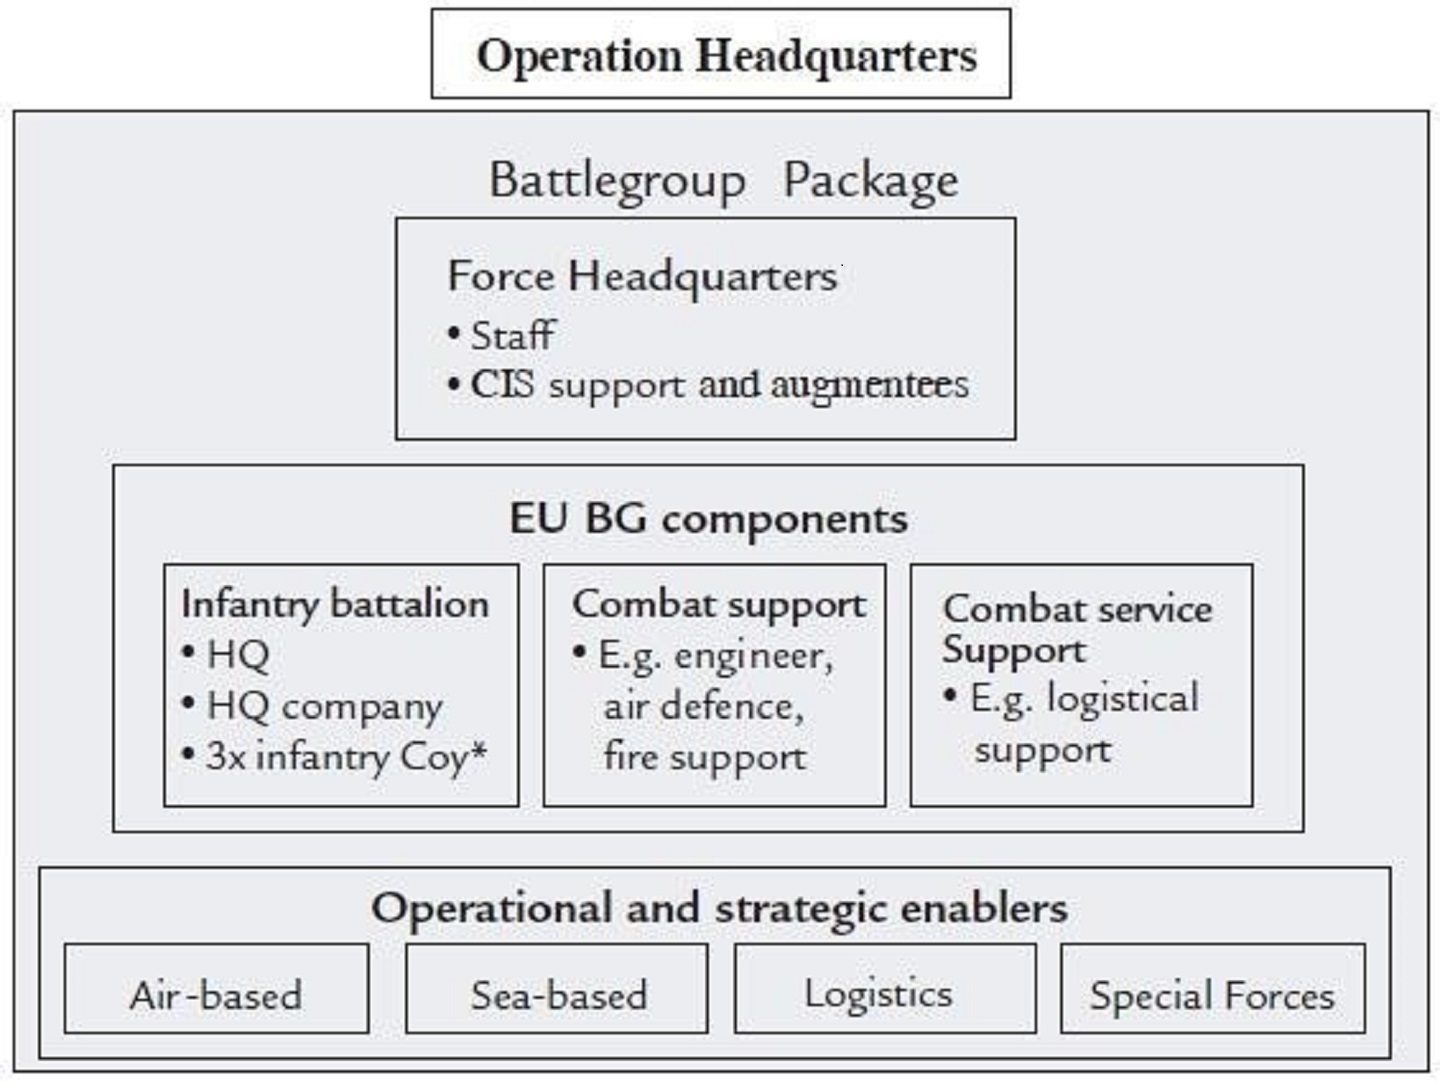 Figure 3: Battlegroup Organization